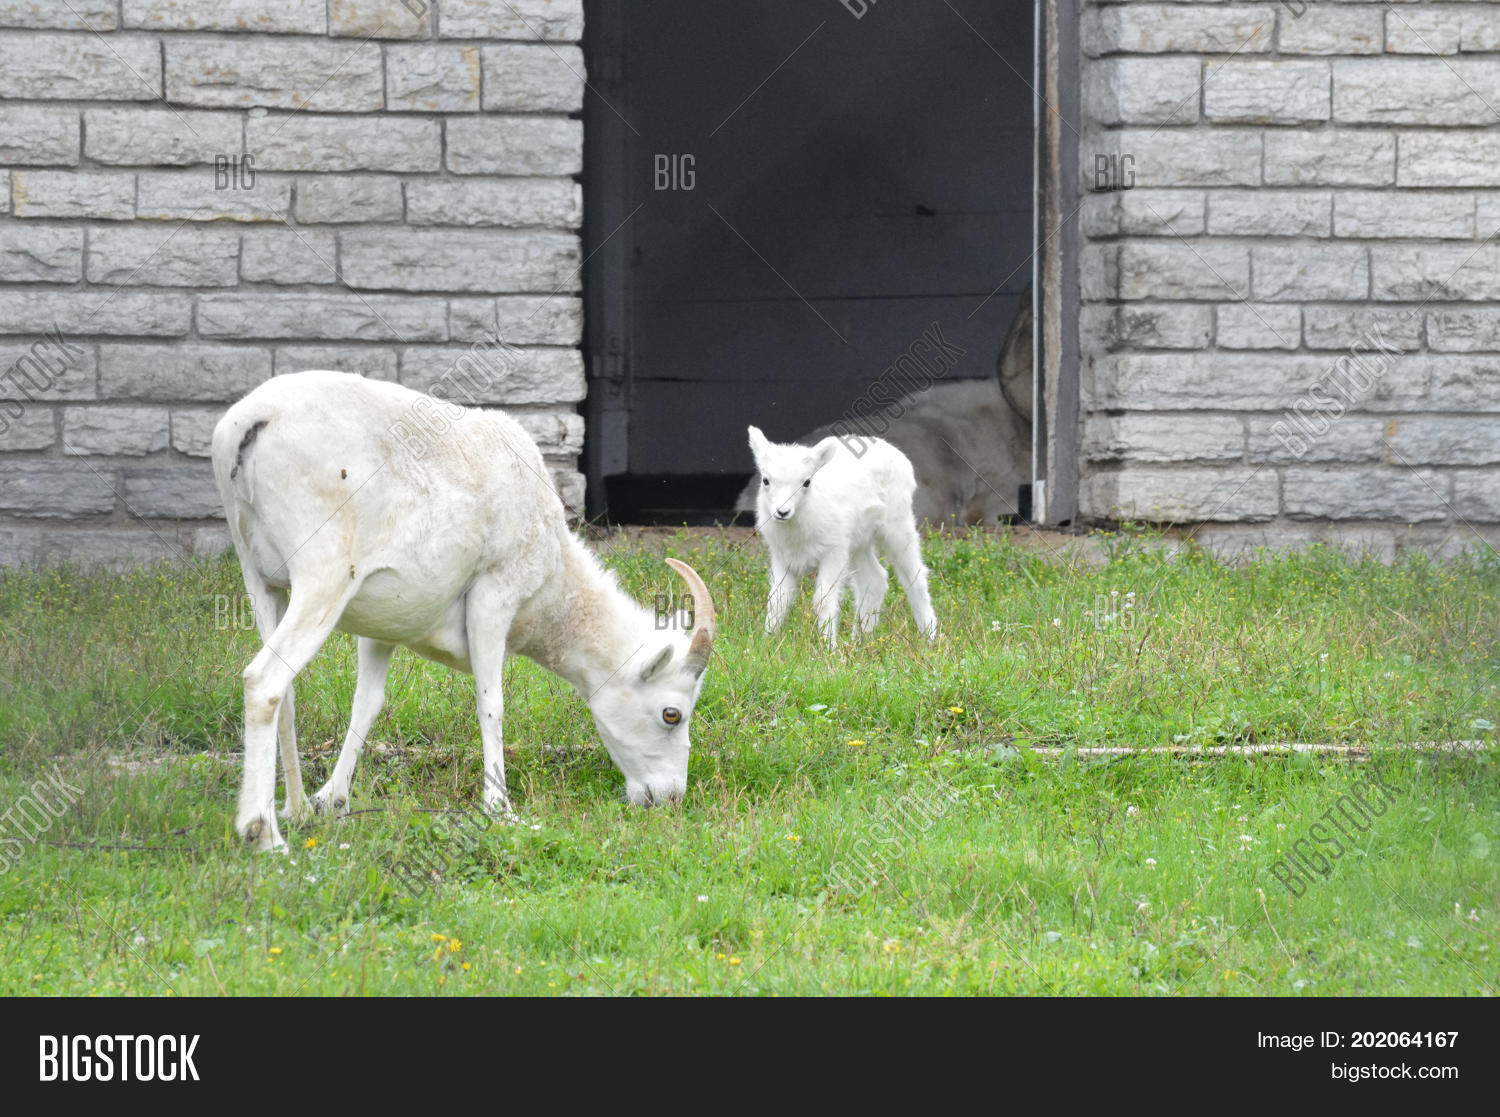 A mother and baby Dall sheep in the outdoors